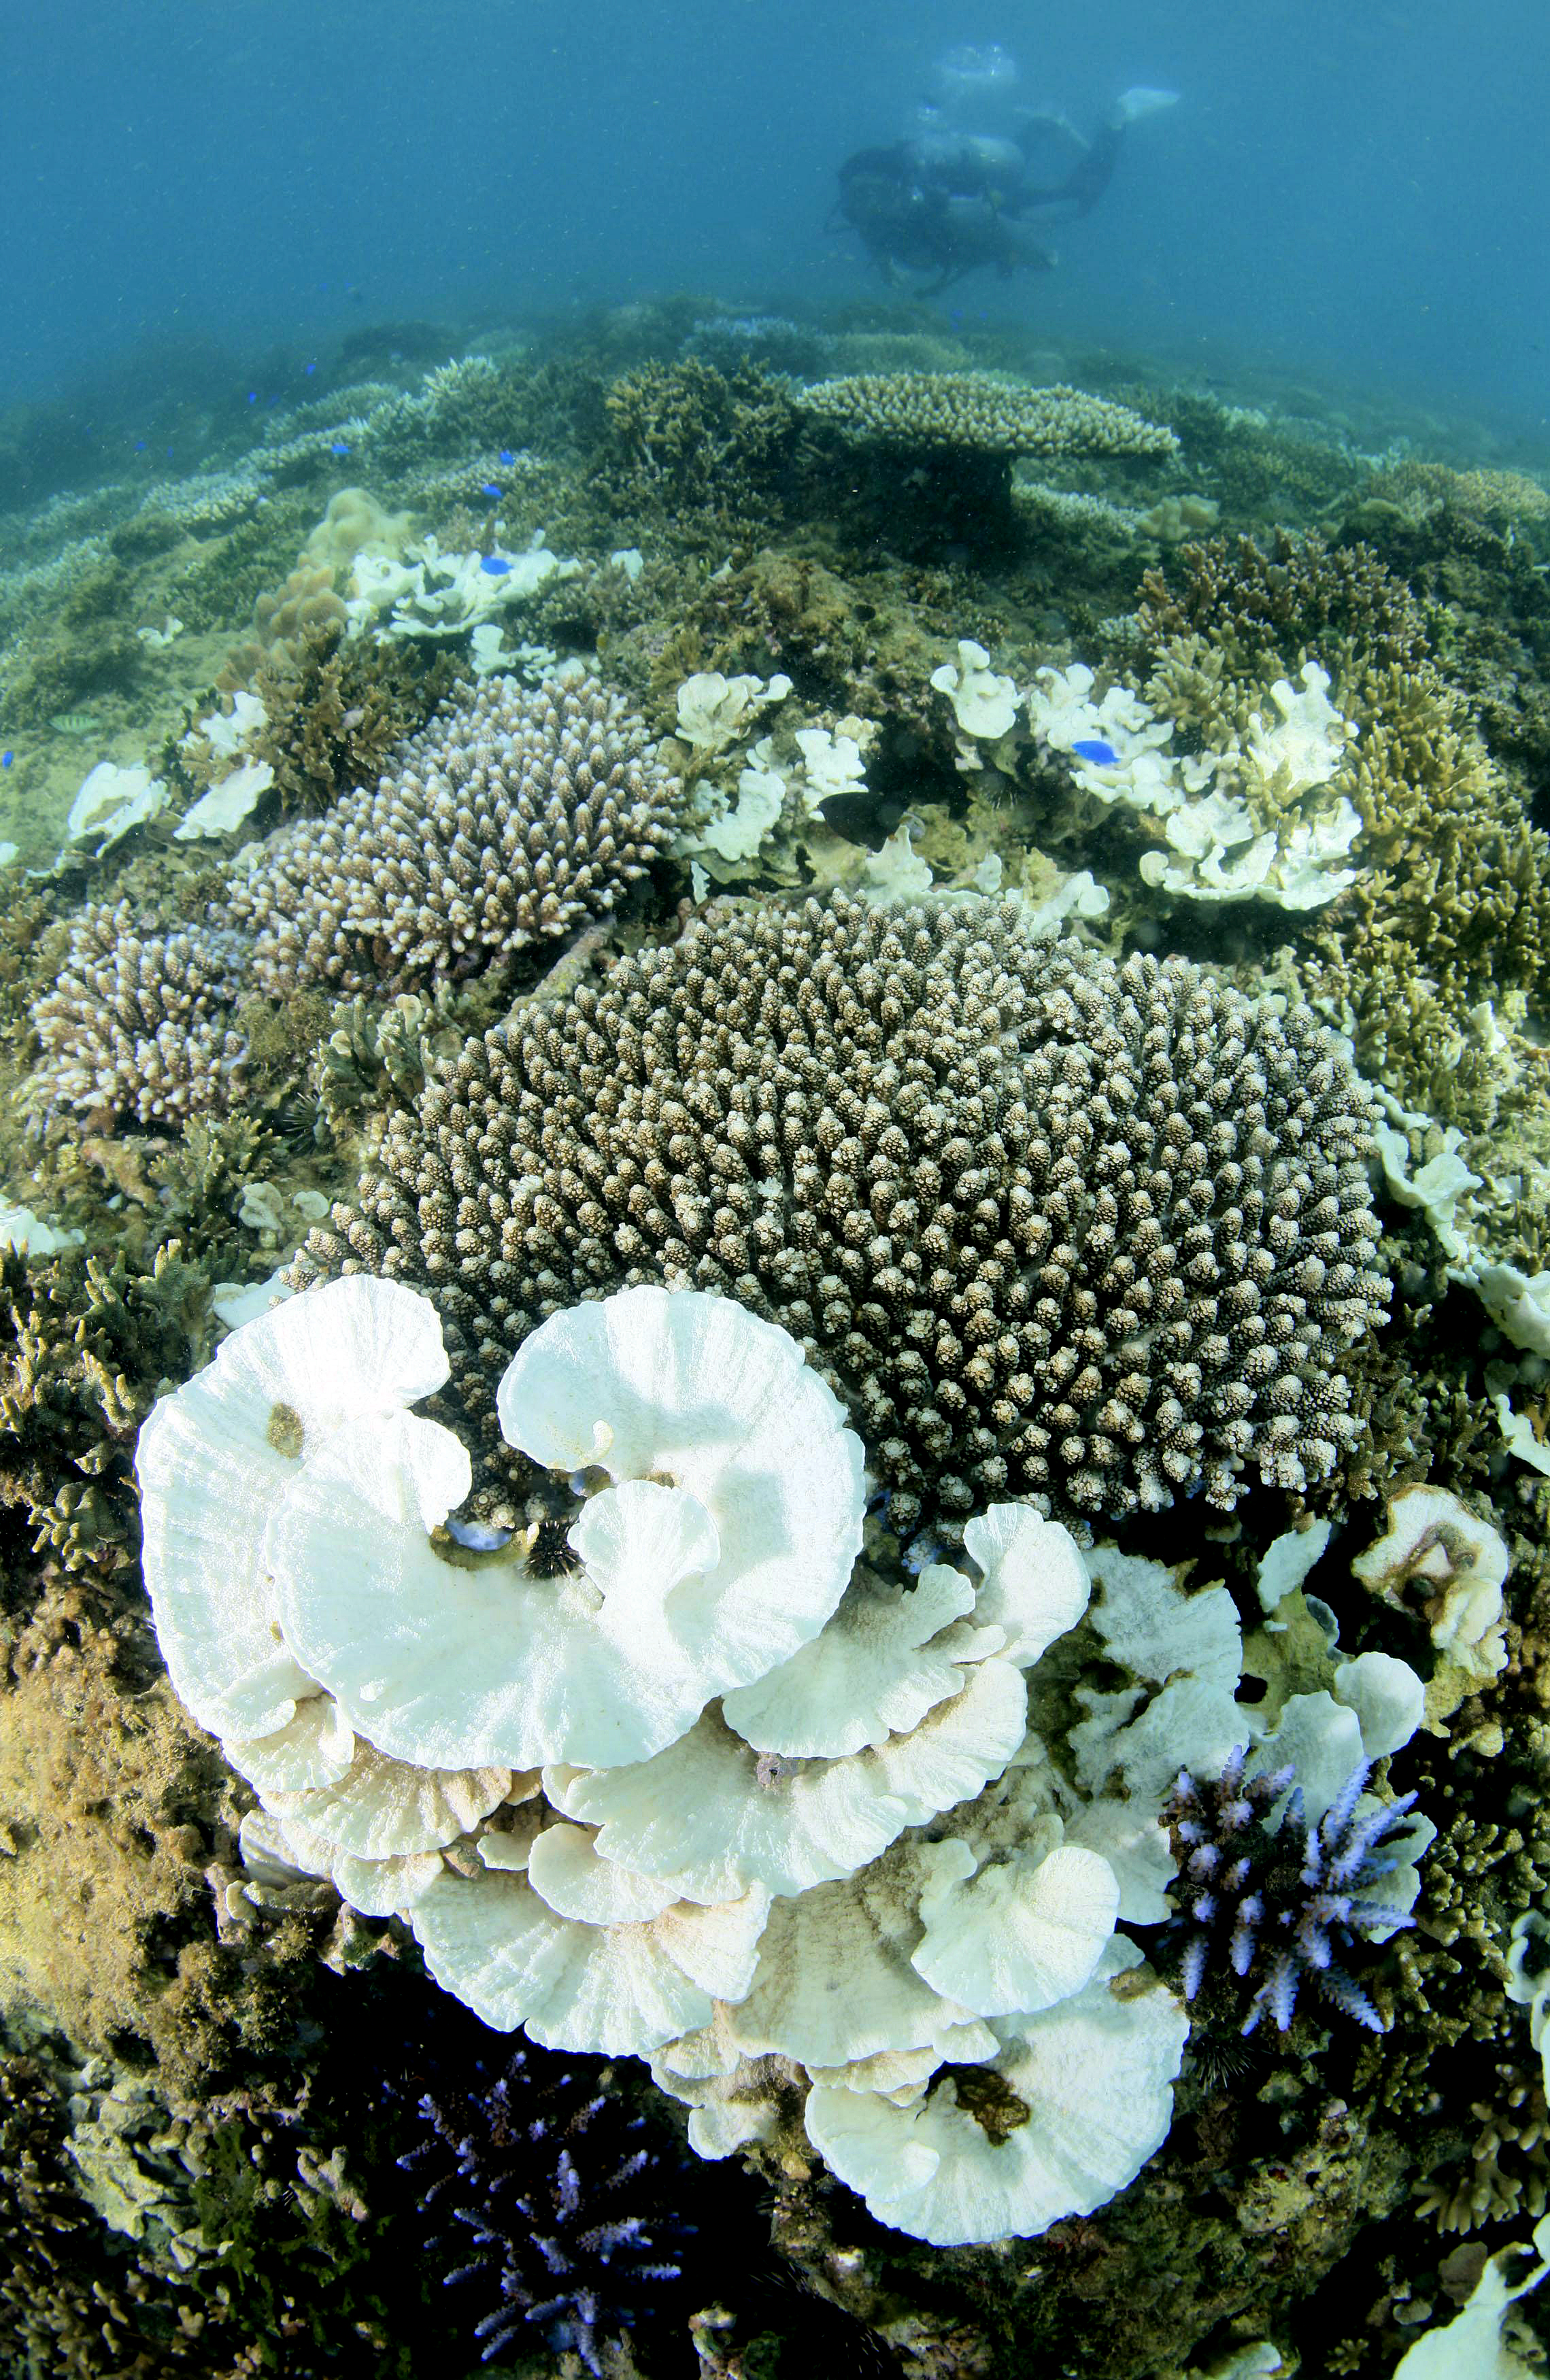 Corals are bleached on a seabed near Okinawa island on Aug. 26, 2013.